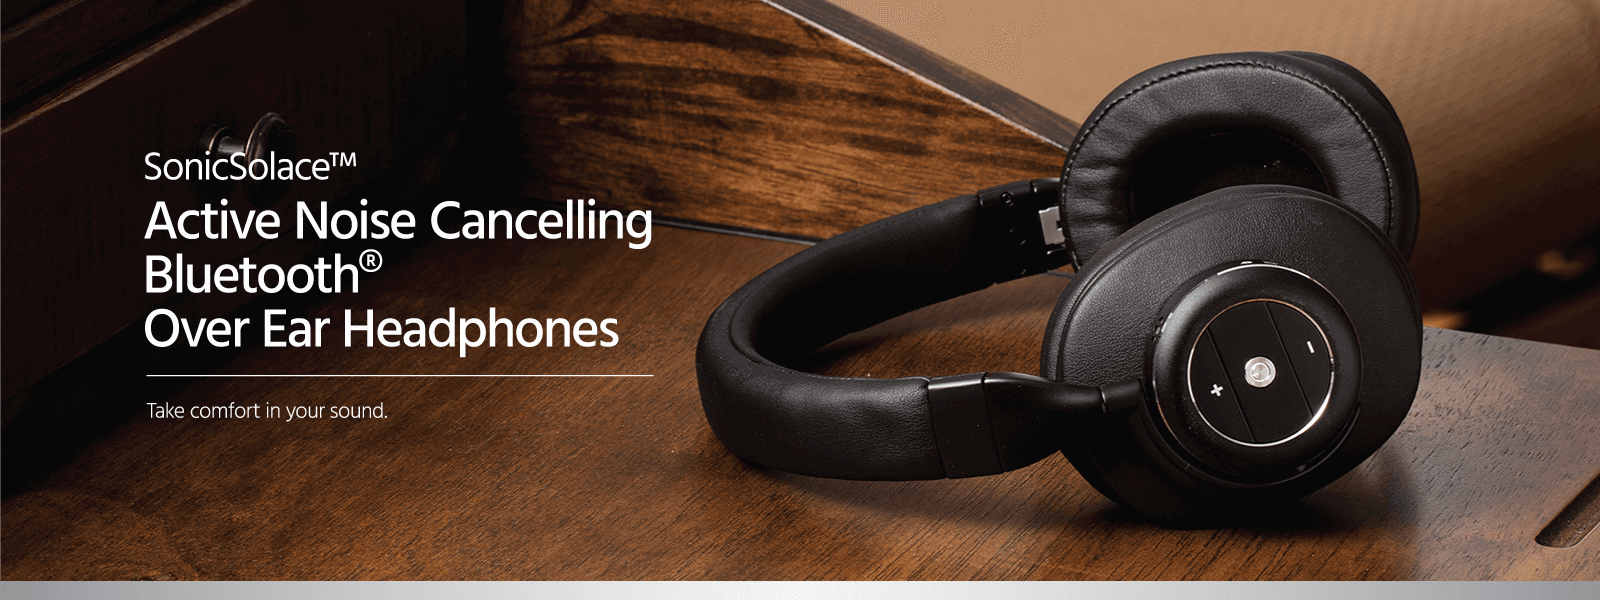 453e65c47a8 Monoprice SonicSolace Active Noise Cancelling Bluetooth 5 with aptX ...